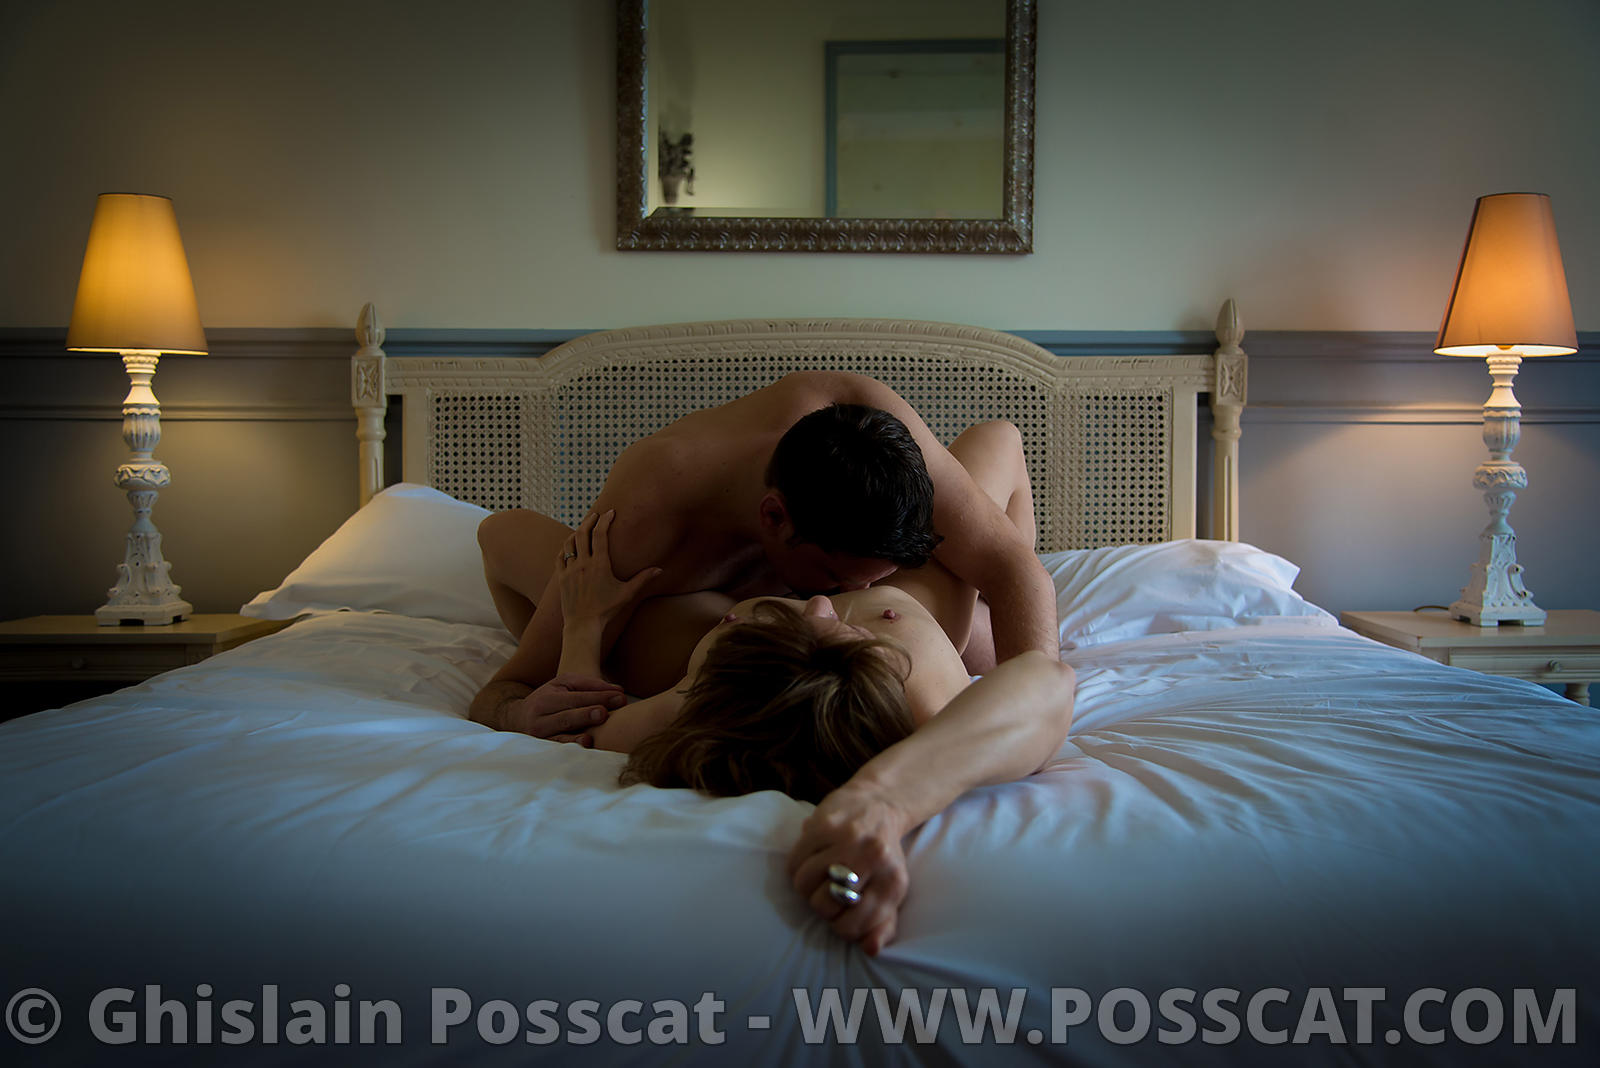 Erotic and nude Photo shooting for couple - man and woman making love on a bed